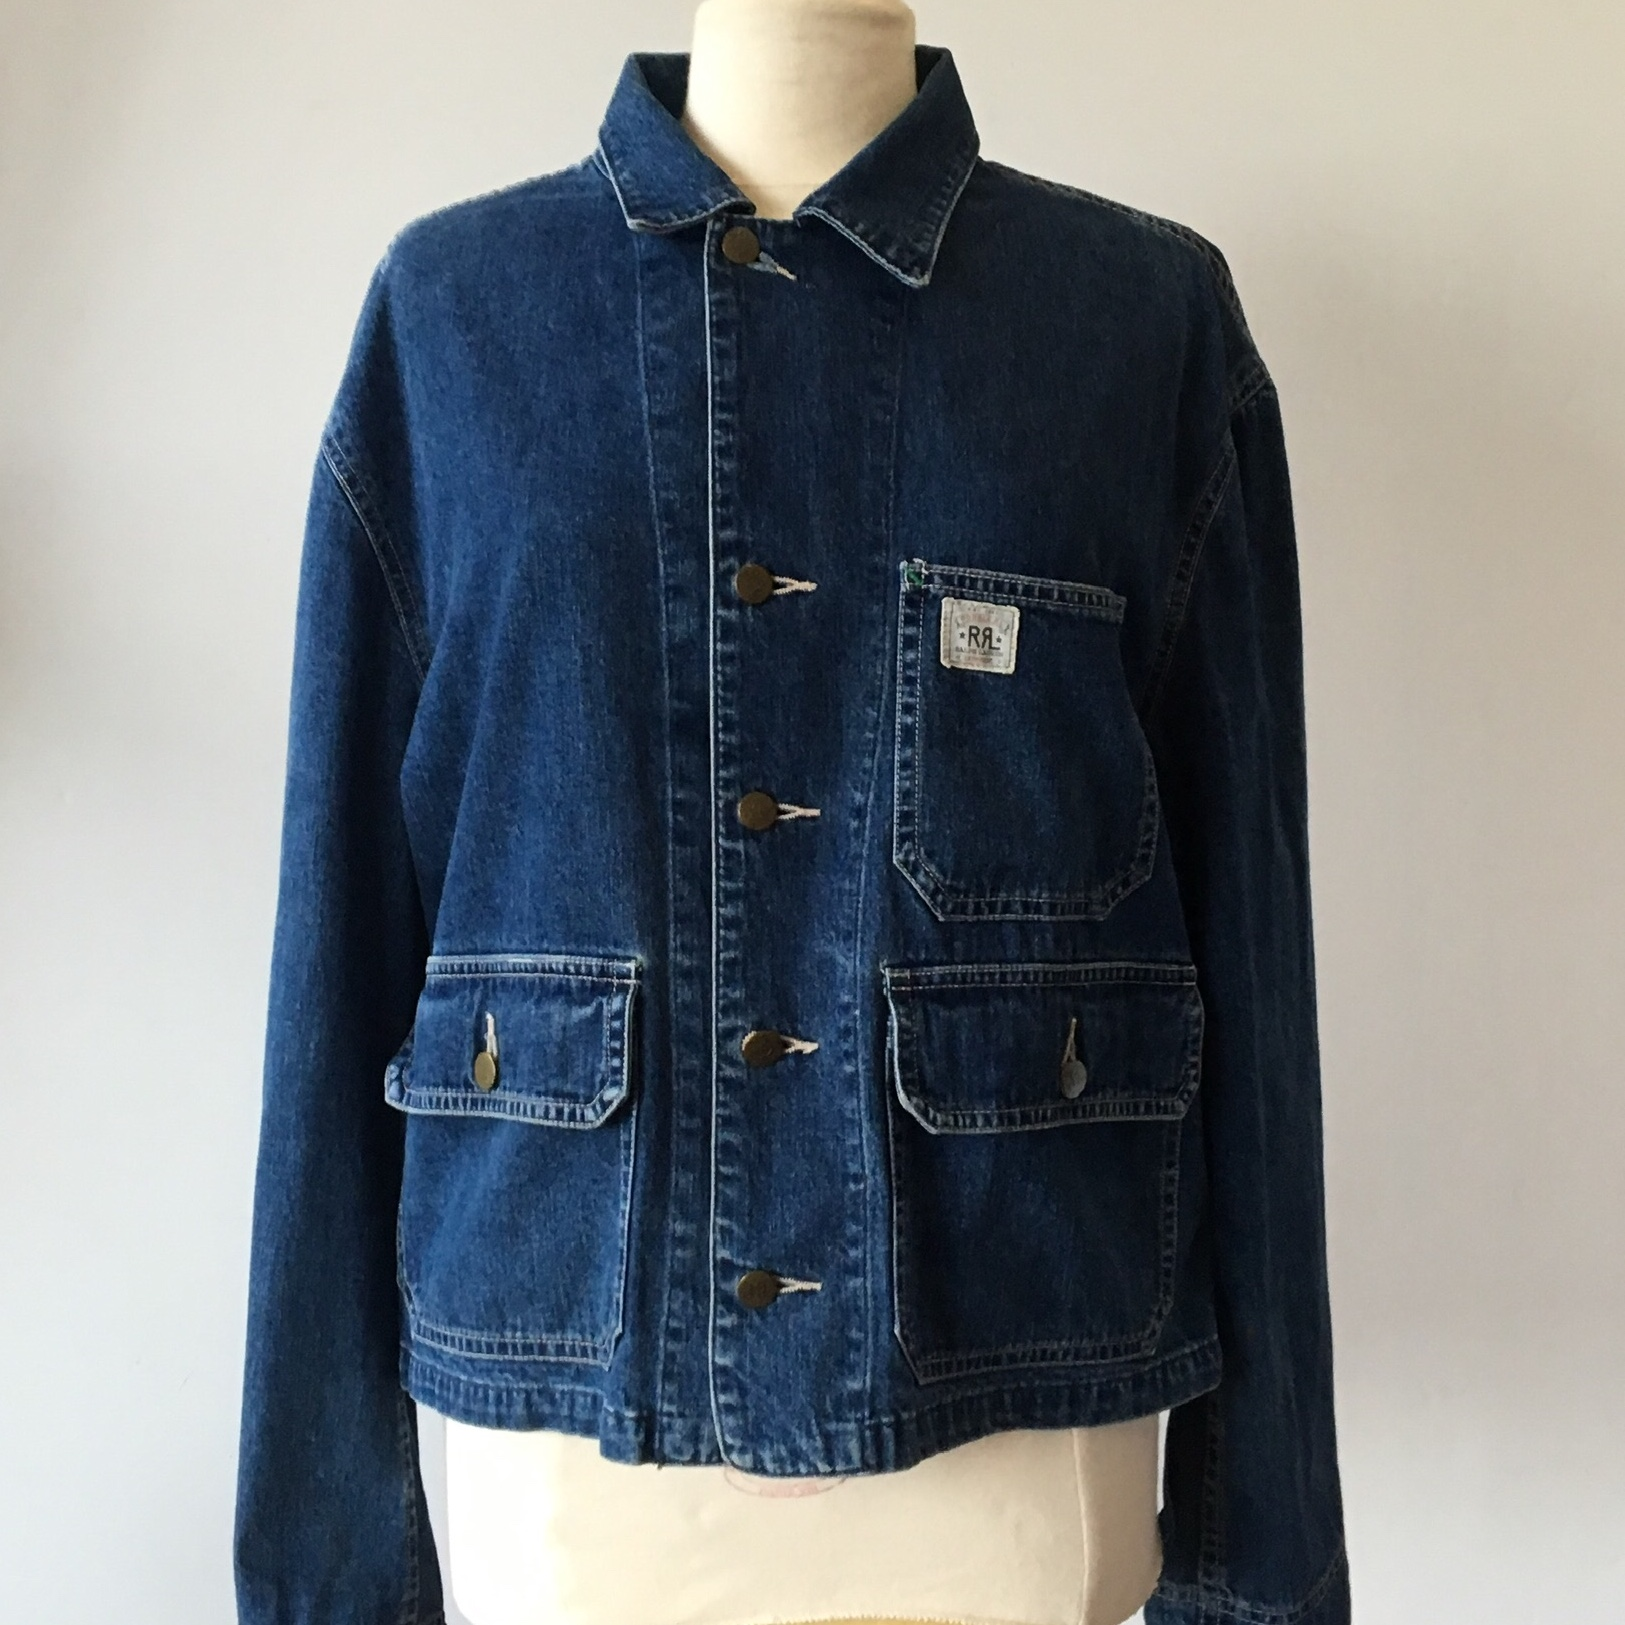 838784c6d RRL Cropped Chore Denim Jacket. Used condition, some... - Depop